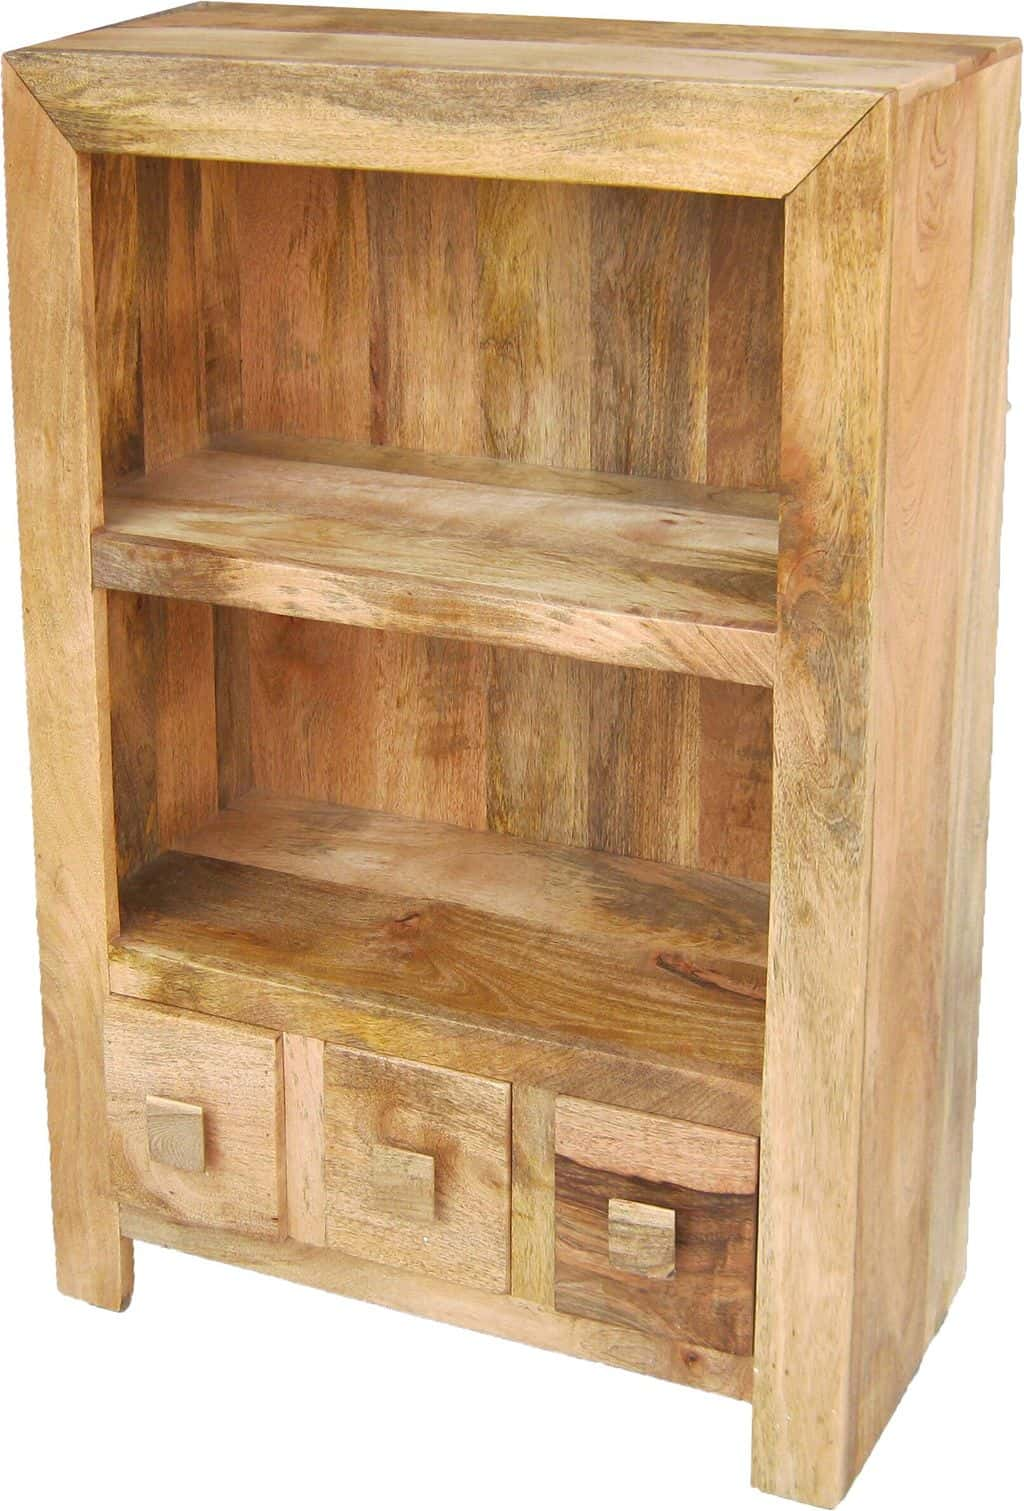 Solid Light Mango Wood Small Low Open Bookcase Display Unit